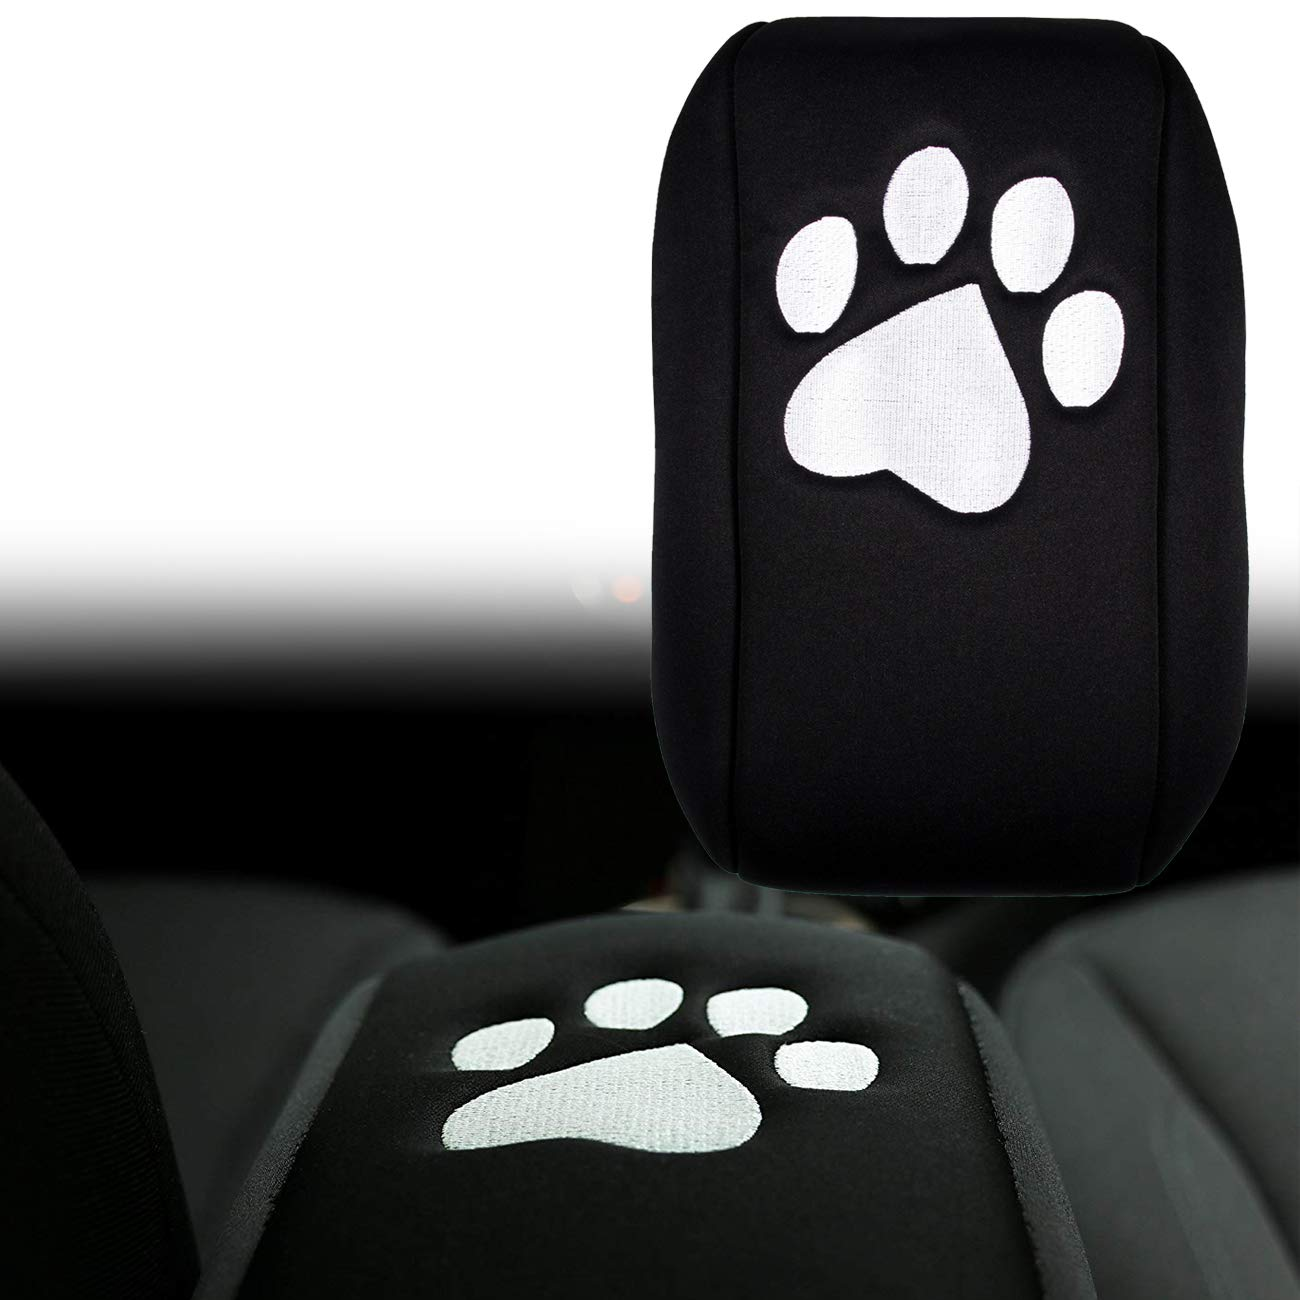 Yoursme Neoprene Center Console Armrest Pad Cover Black Dog Paw Protector Cushion for Jeep Grand Cherokee 2010 2011 2012 2013 2014 2015 2016